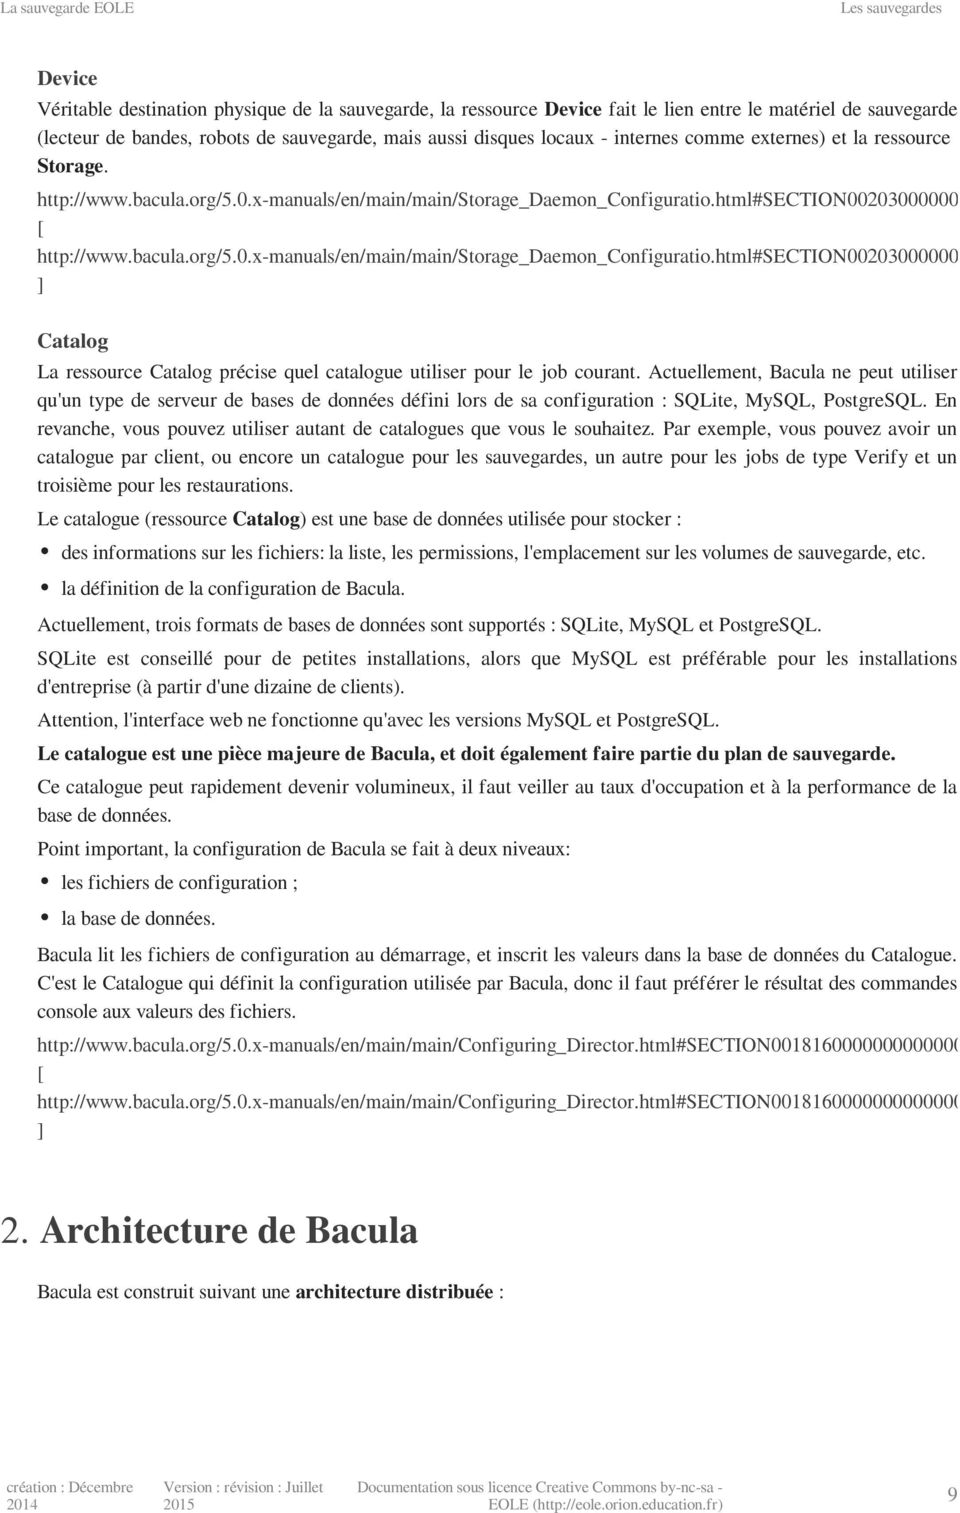 bacula.org/5.0.x-manuals/en/main/main/storage_daemon_configuratio.html#section002030000000000000 ] Catalog La ressource Catalog précise quel catalogue utiliser pour le job courant.